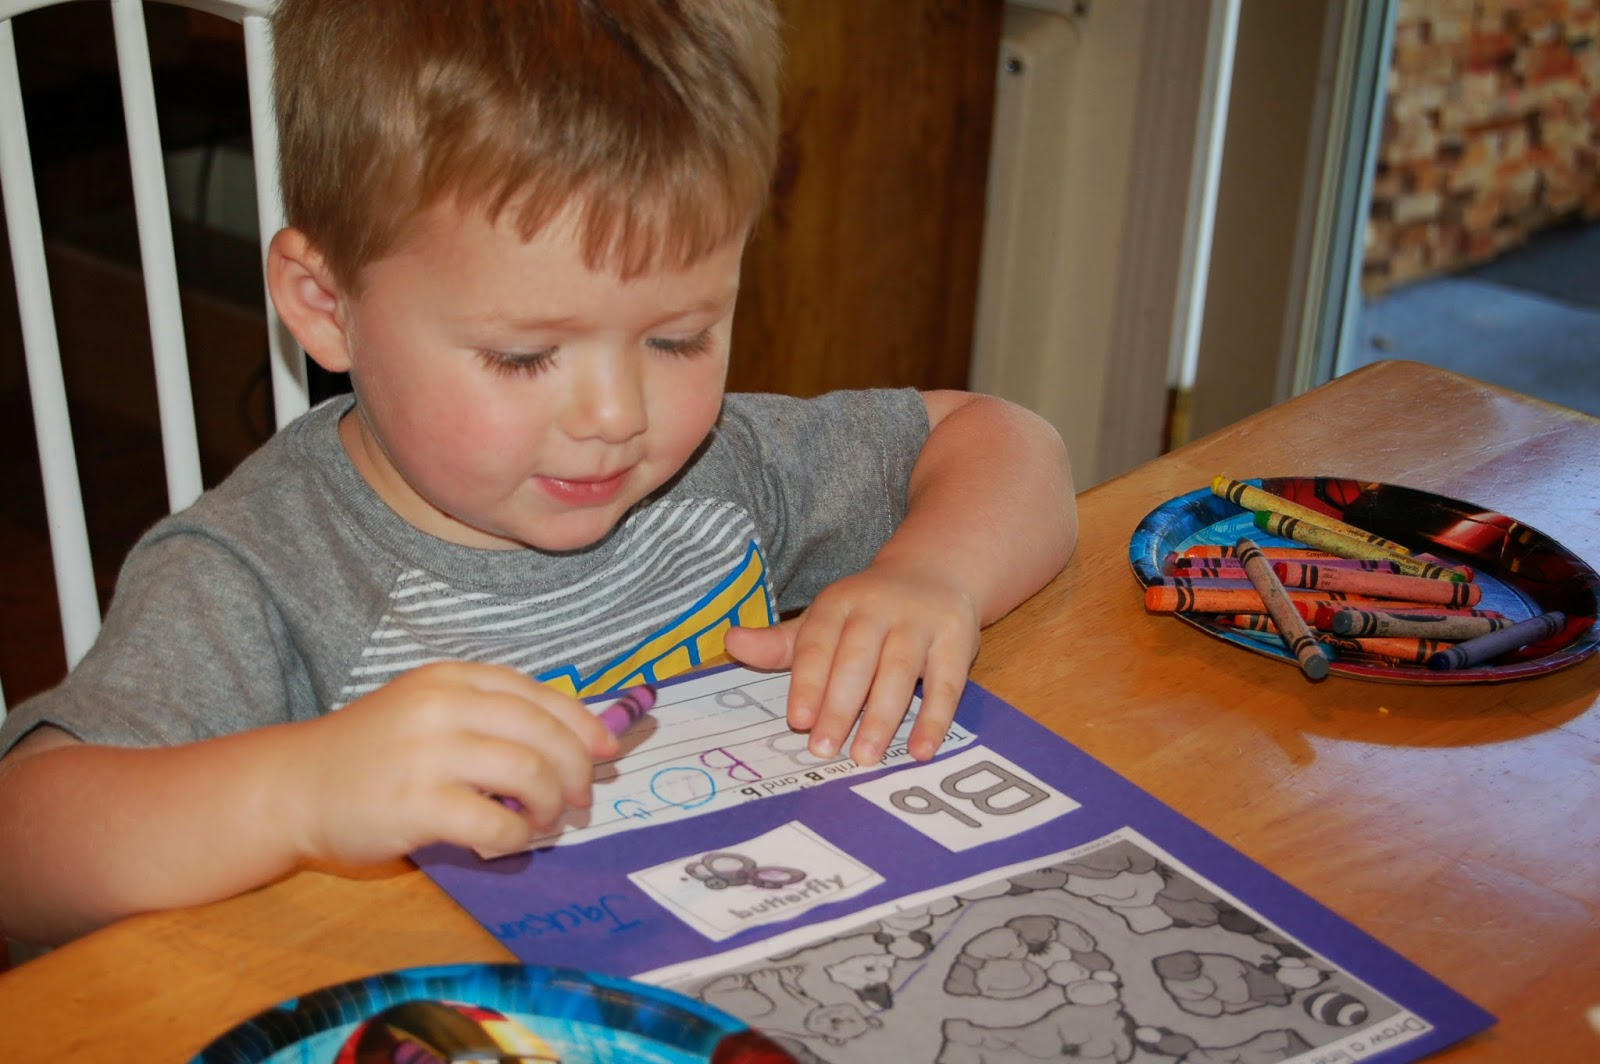 The Kids Glued Bits Of Several Worksheets Onto Their